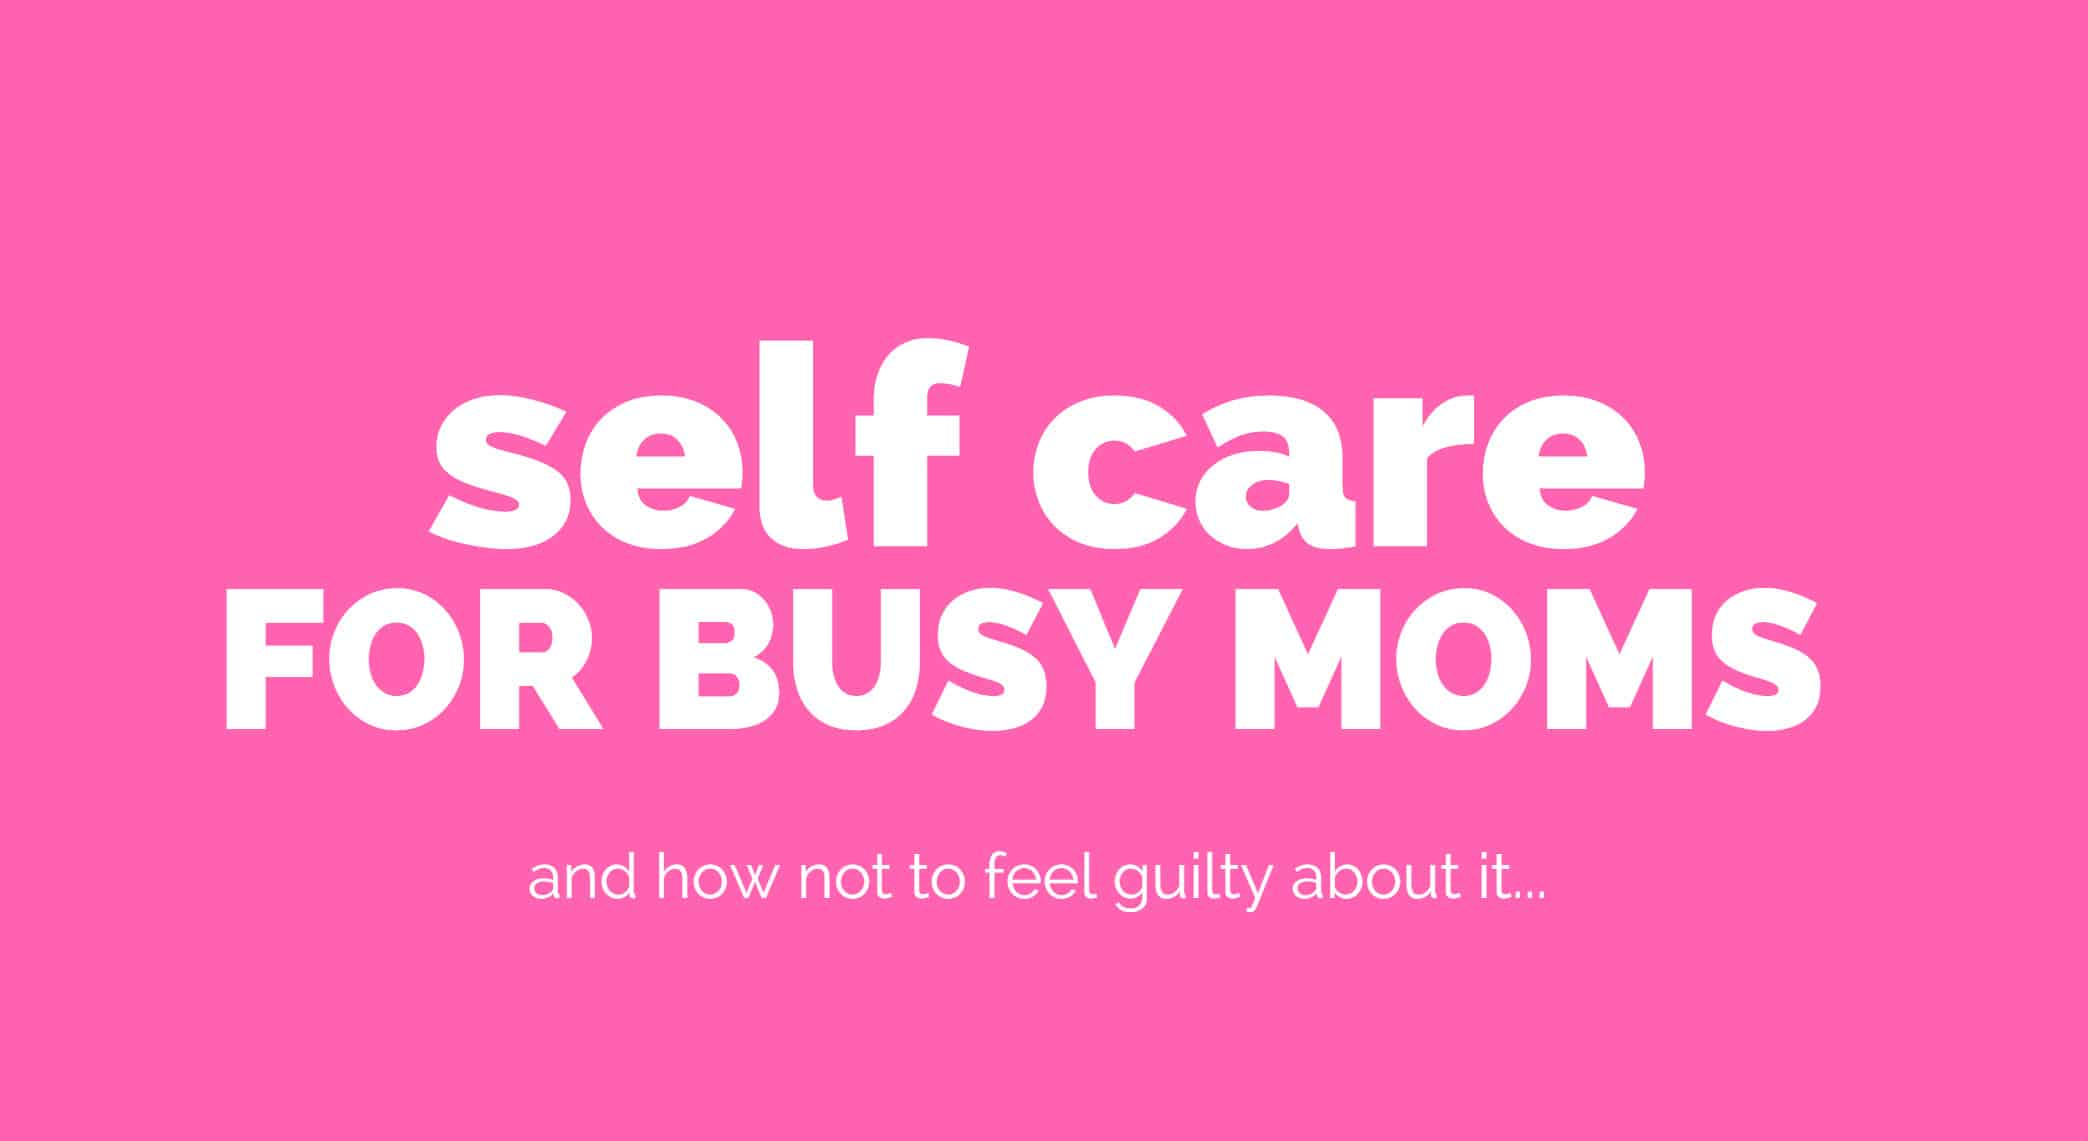 self care busy moms featured image